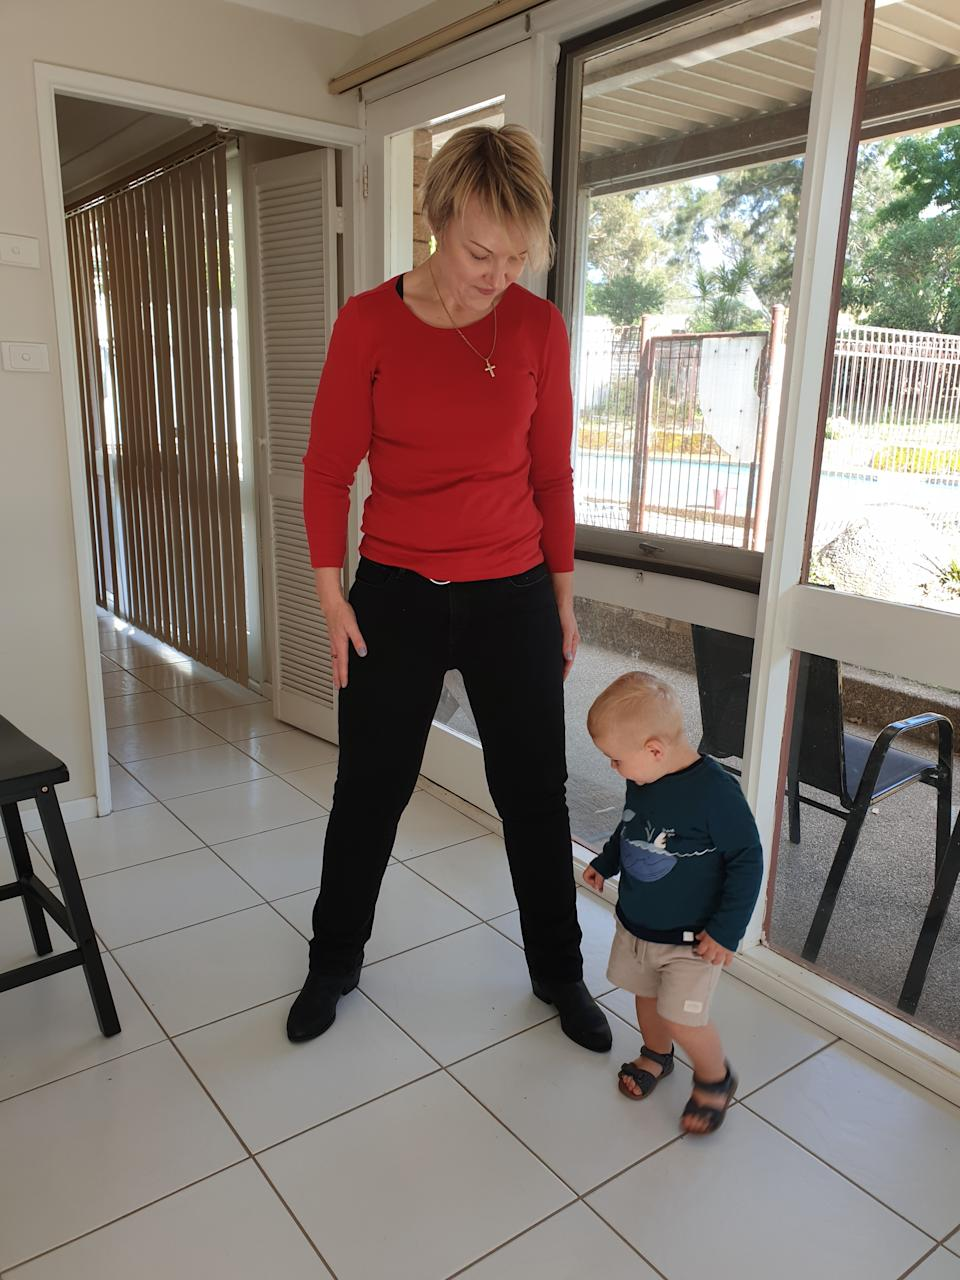 The new mum now has the energy to keep up with her 22-month-old son. Photo: supplied.